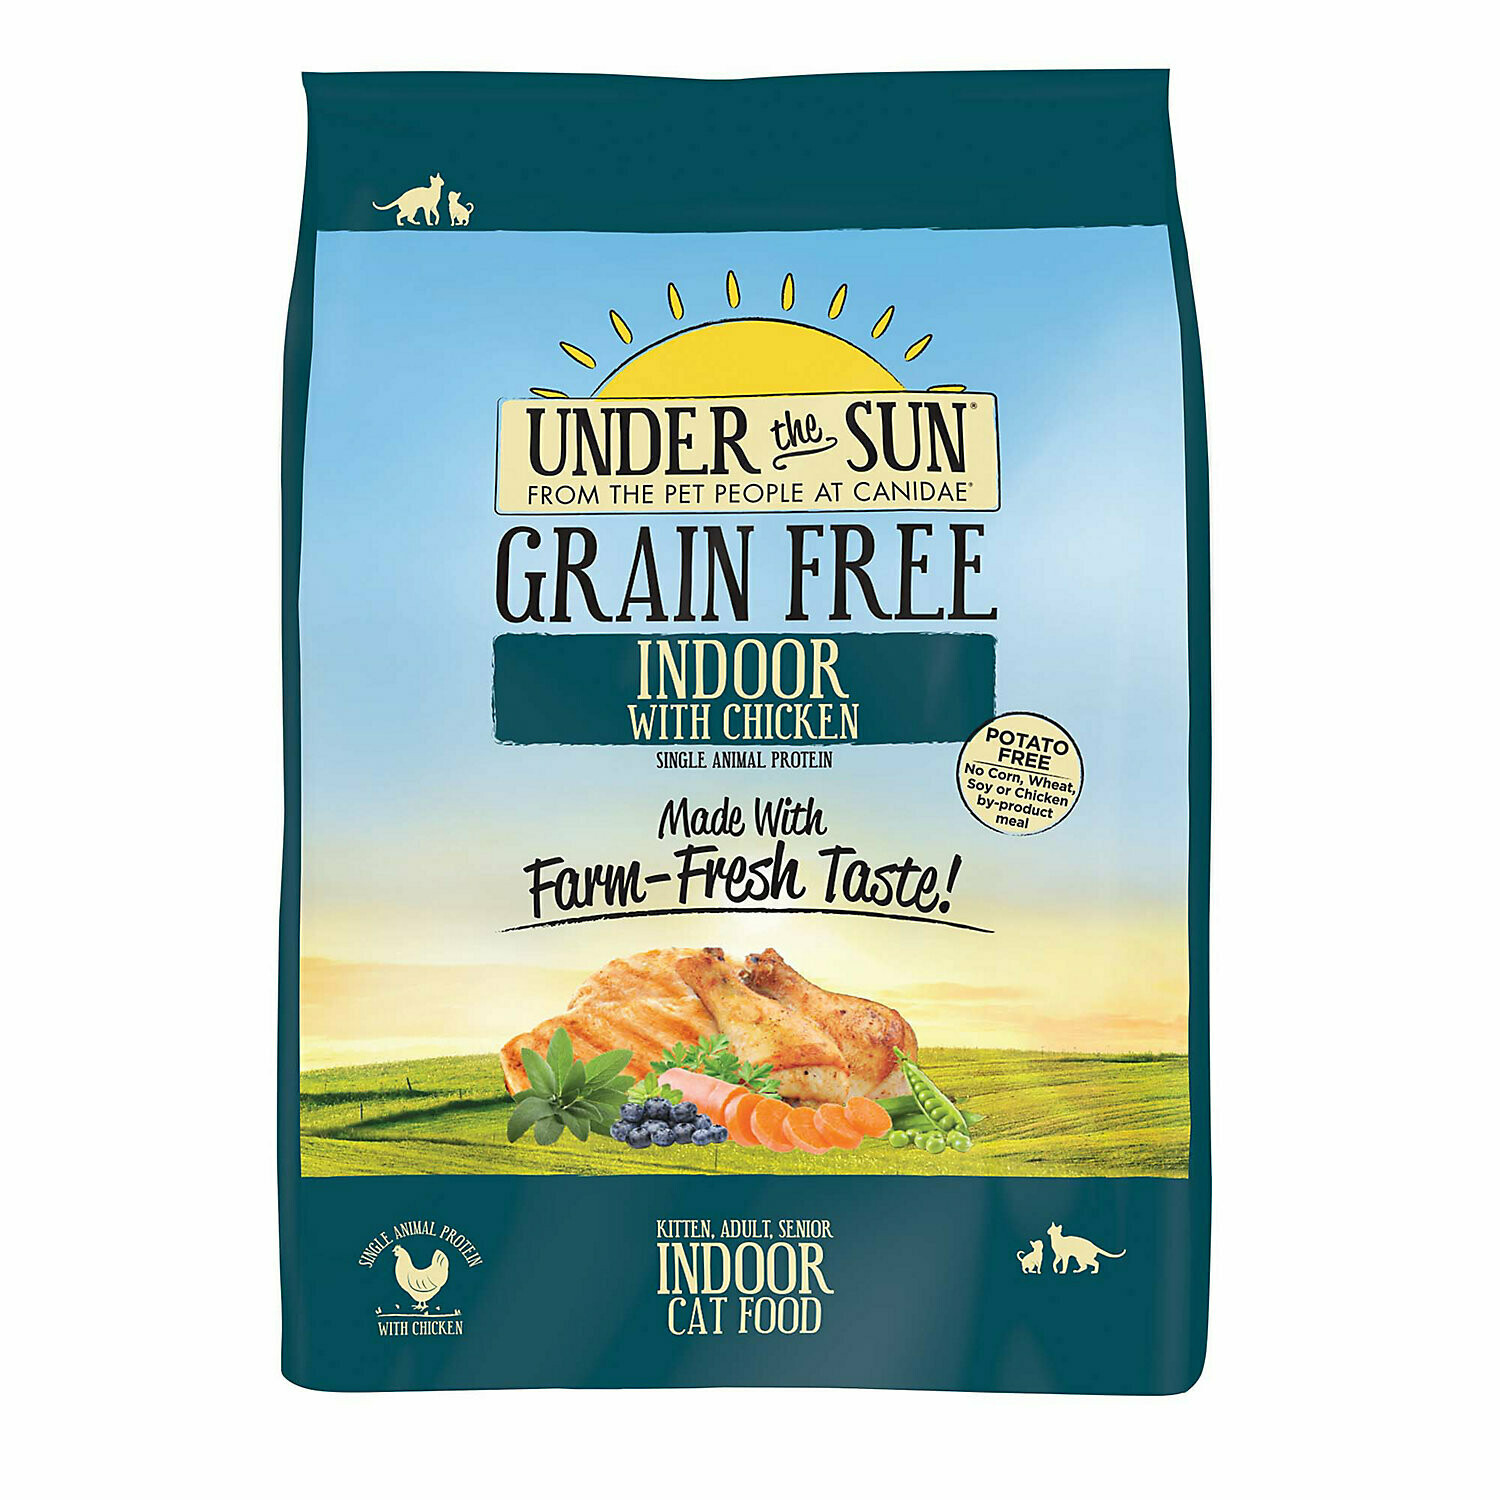 **SALE** Under The Sun Grain Free Adult Indoor Cat Food Made With Farm-Raised Chicken, 2.5 LBS (5/18) (A.L5/CD)